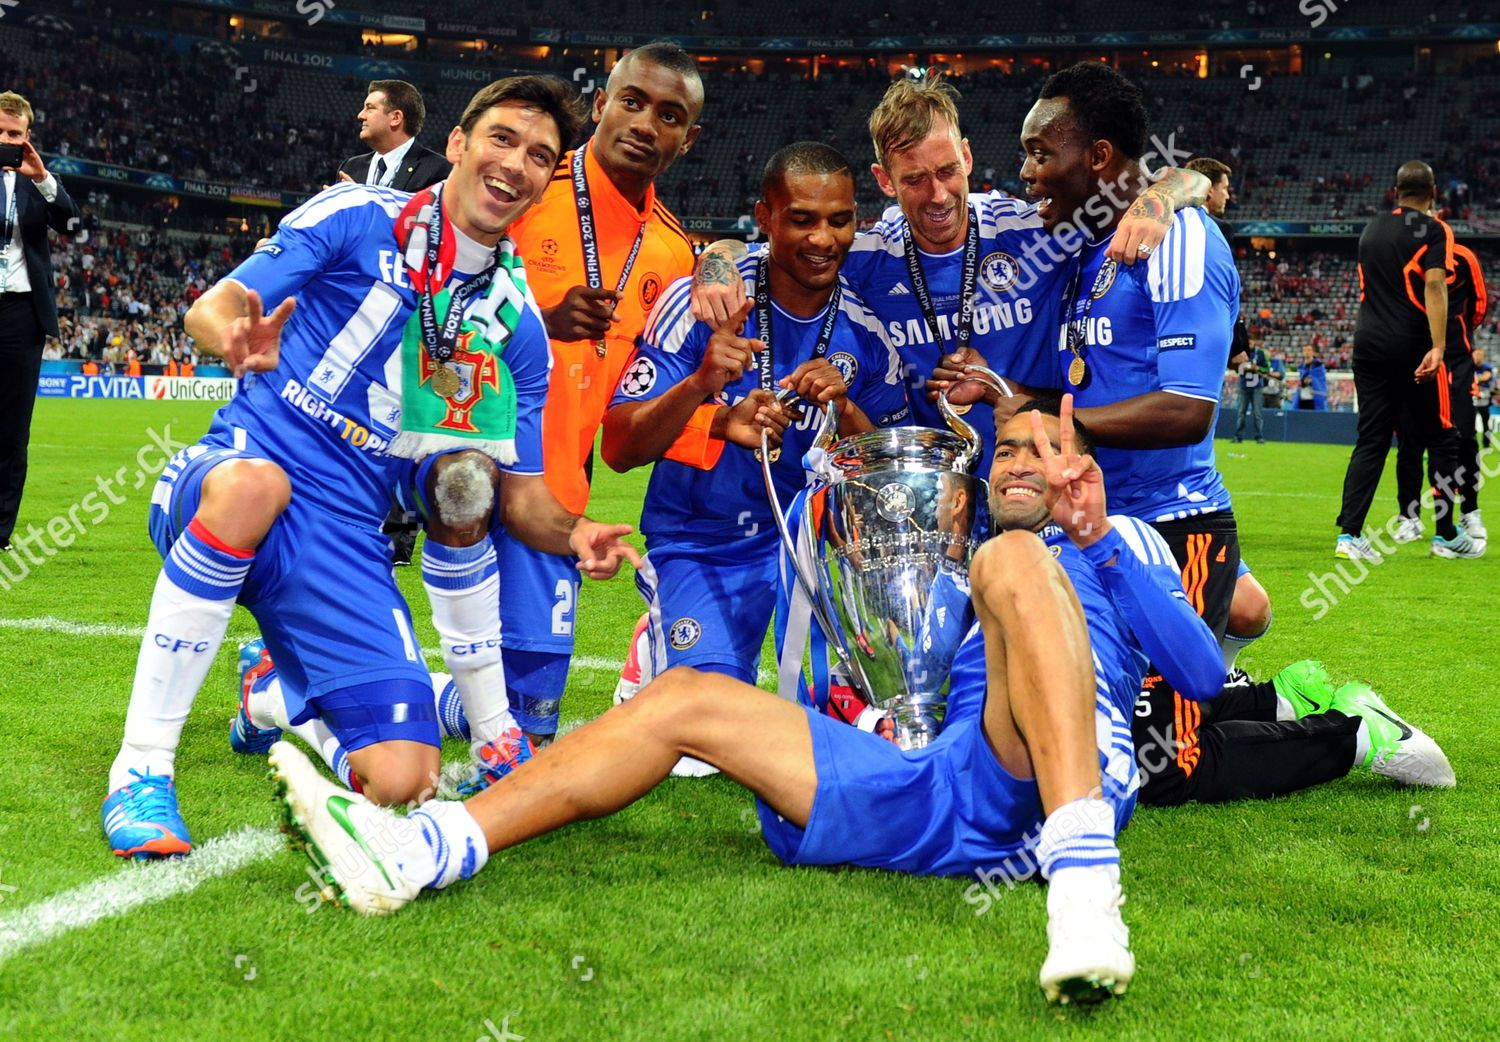 chelseas players celebrate trophy after winning uefa editorial stock photo stock image shutterstock https www shutterstock com editorial image editorial germany soccer uefa champions league final may 2012 8243106h